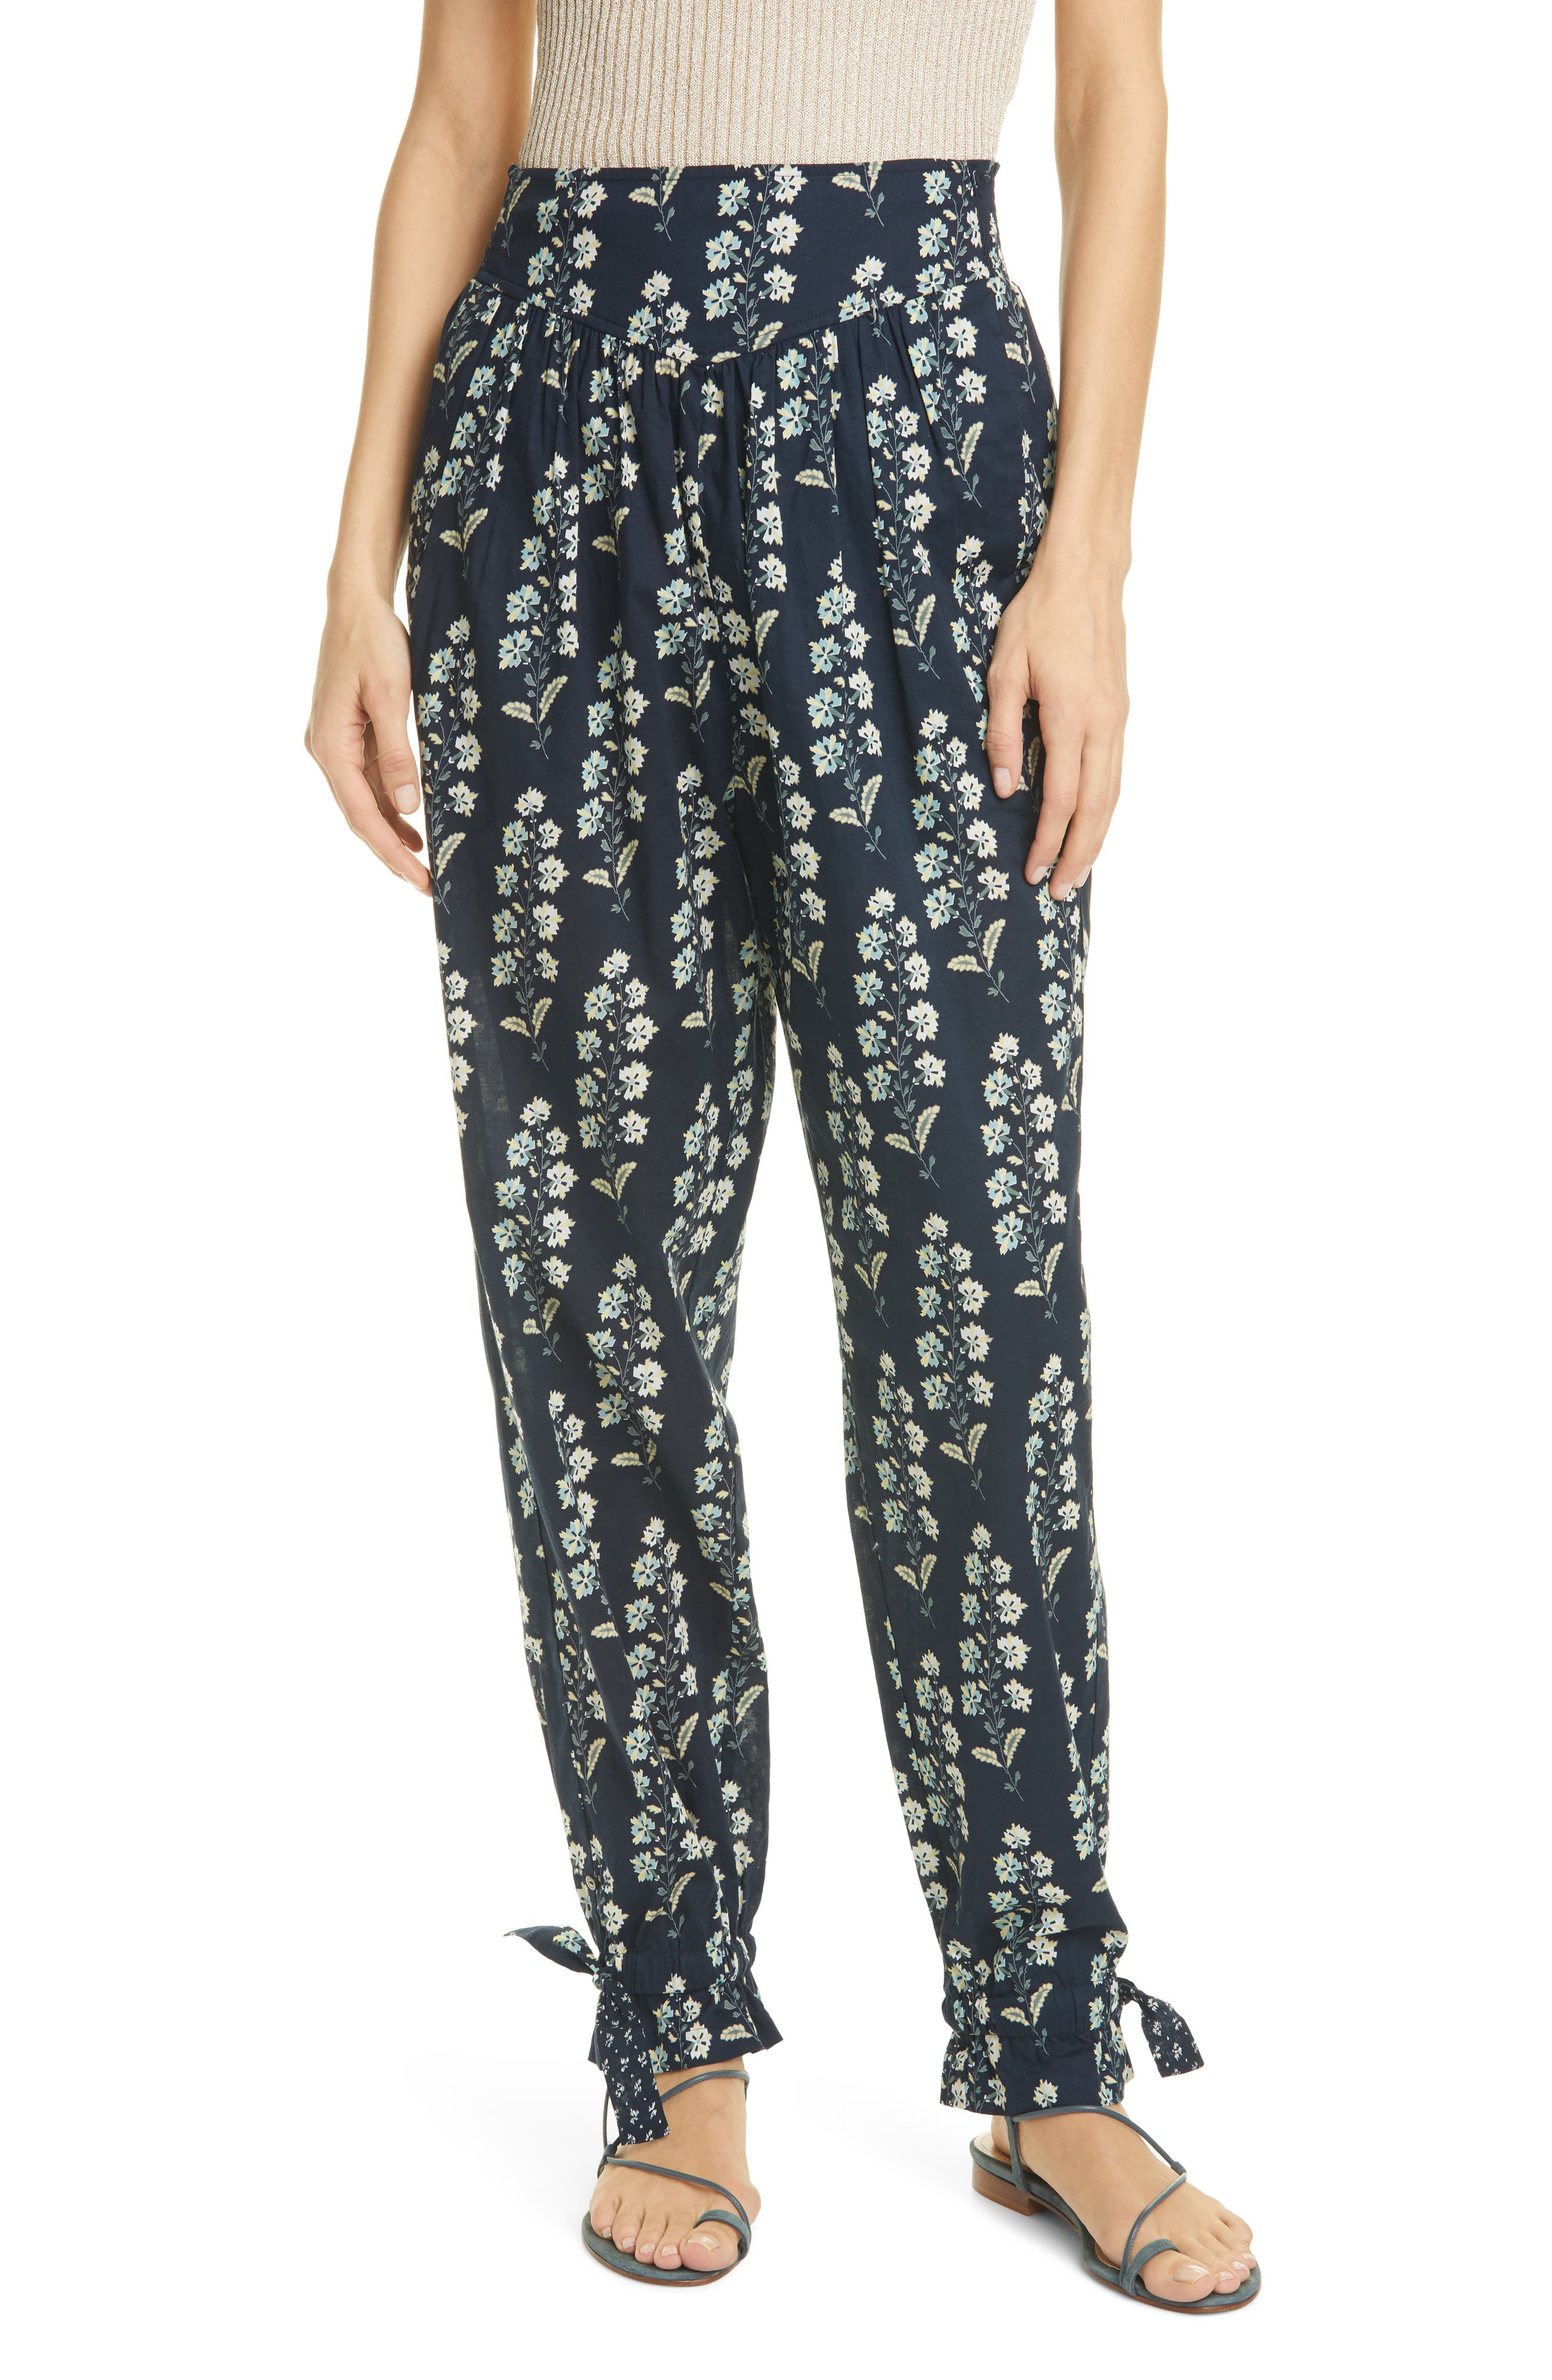 Women's La Vie Rebecca Taylor Larkspur Floral Cotton Pants,  Medium - Blue